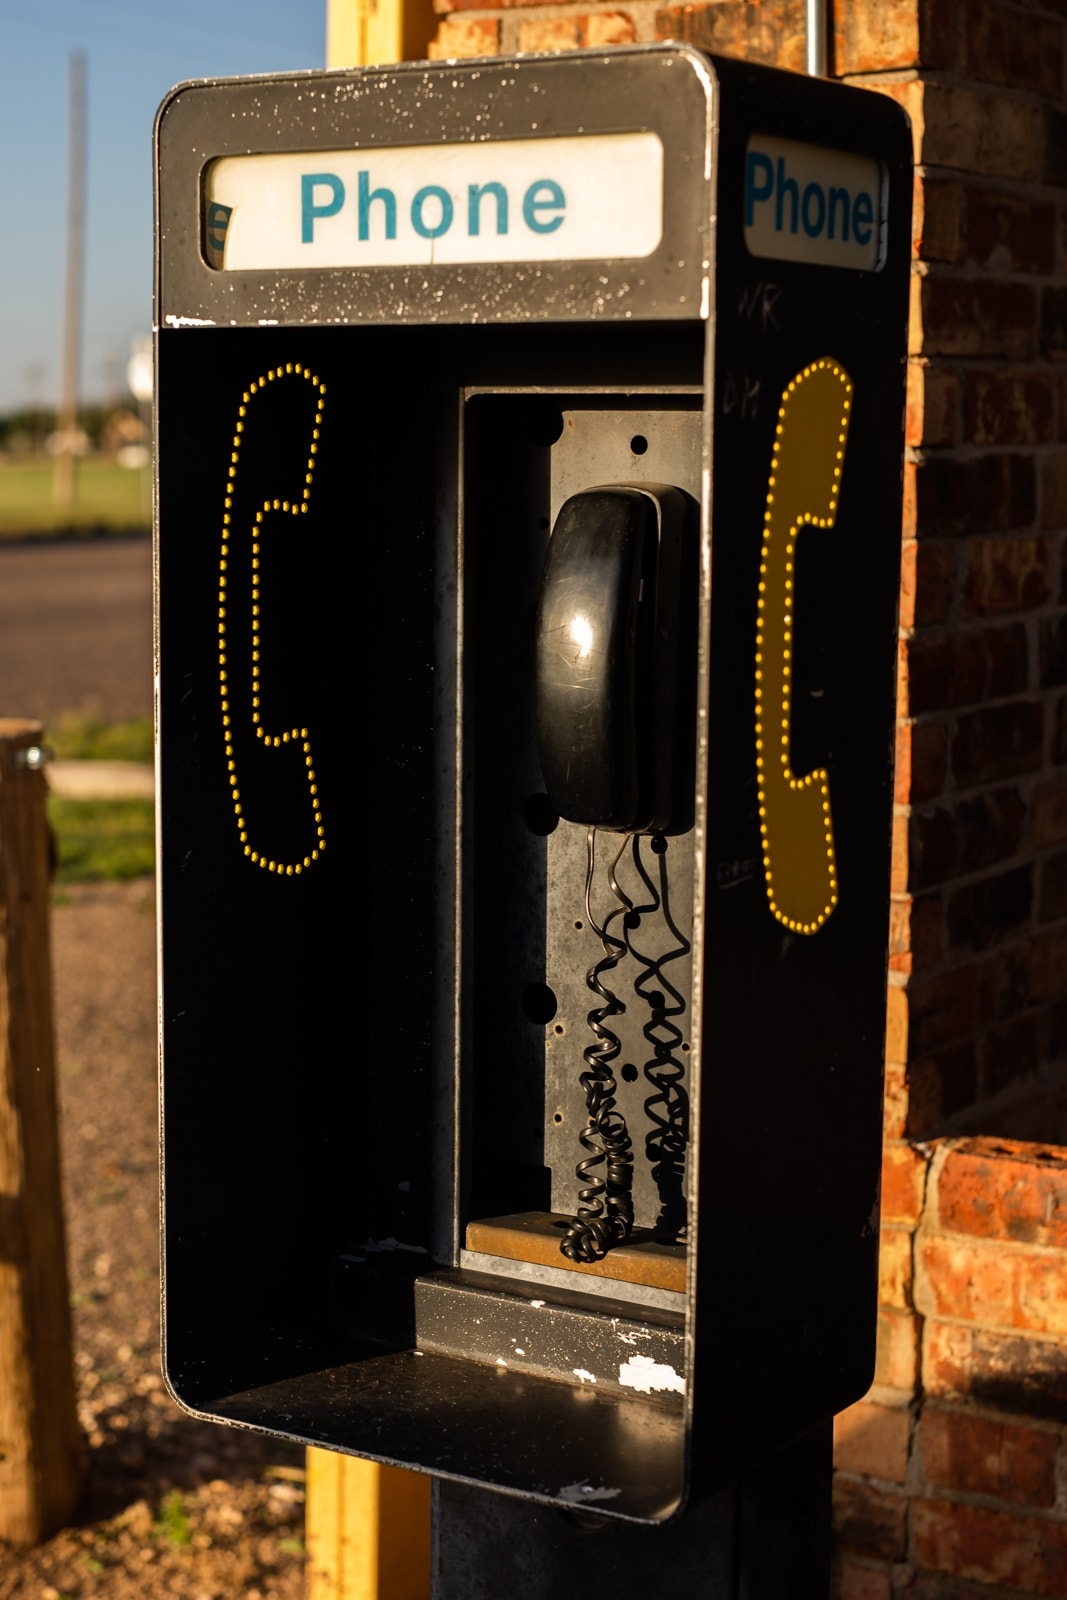 A vintage phone booth with a house phone inside of it